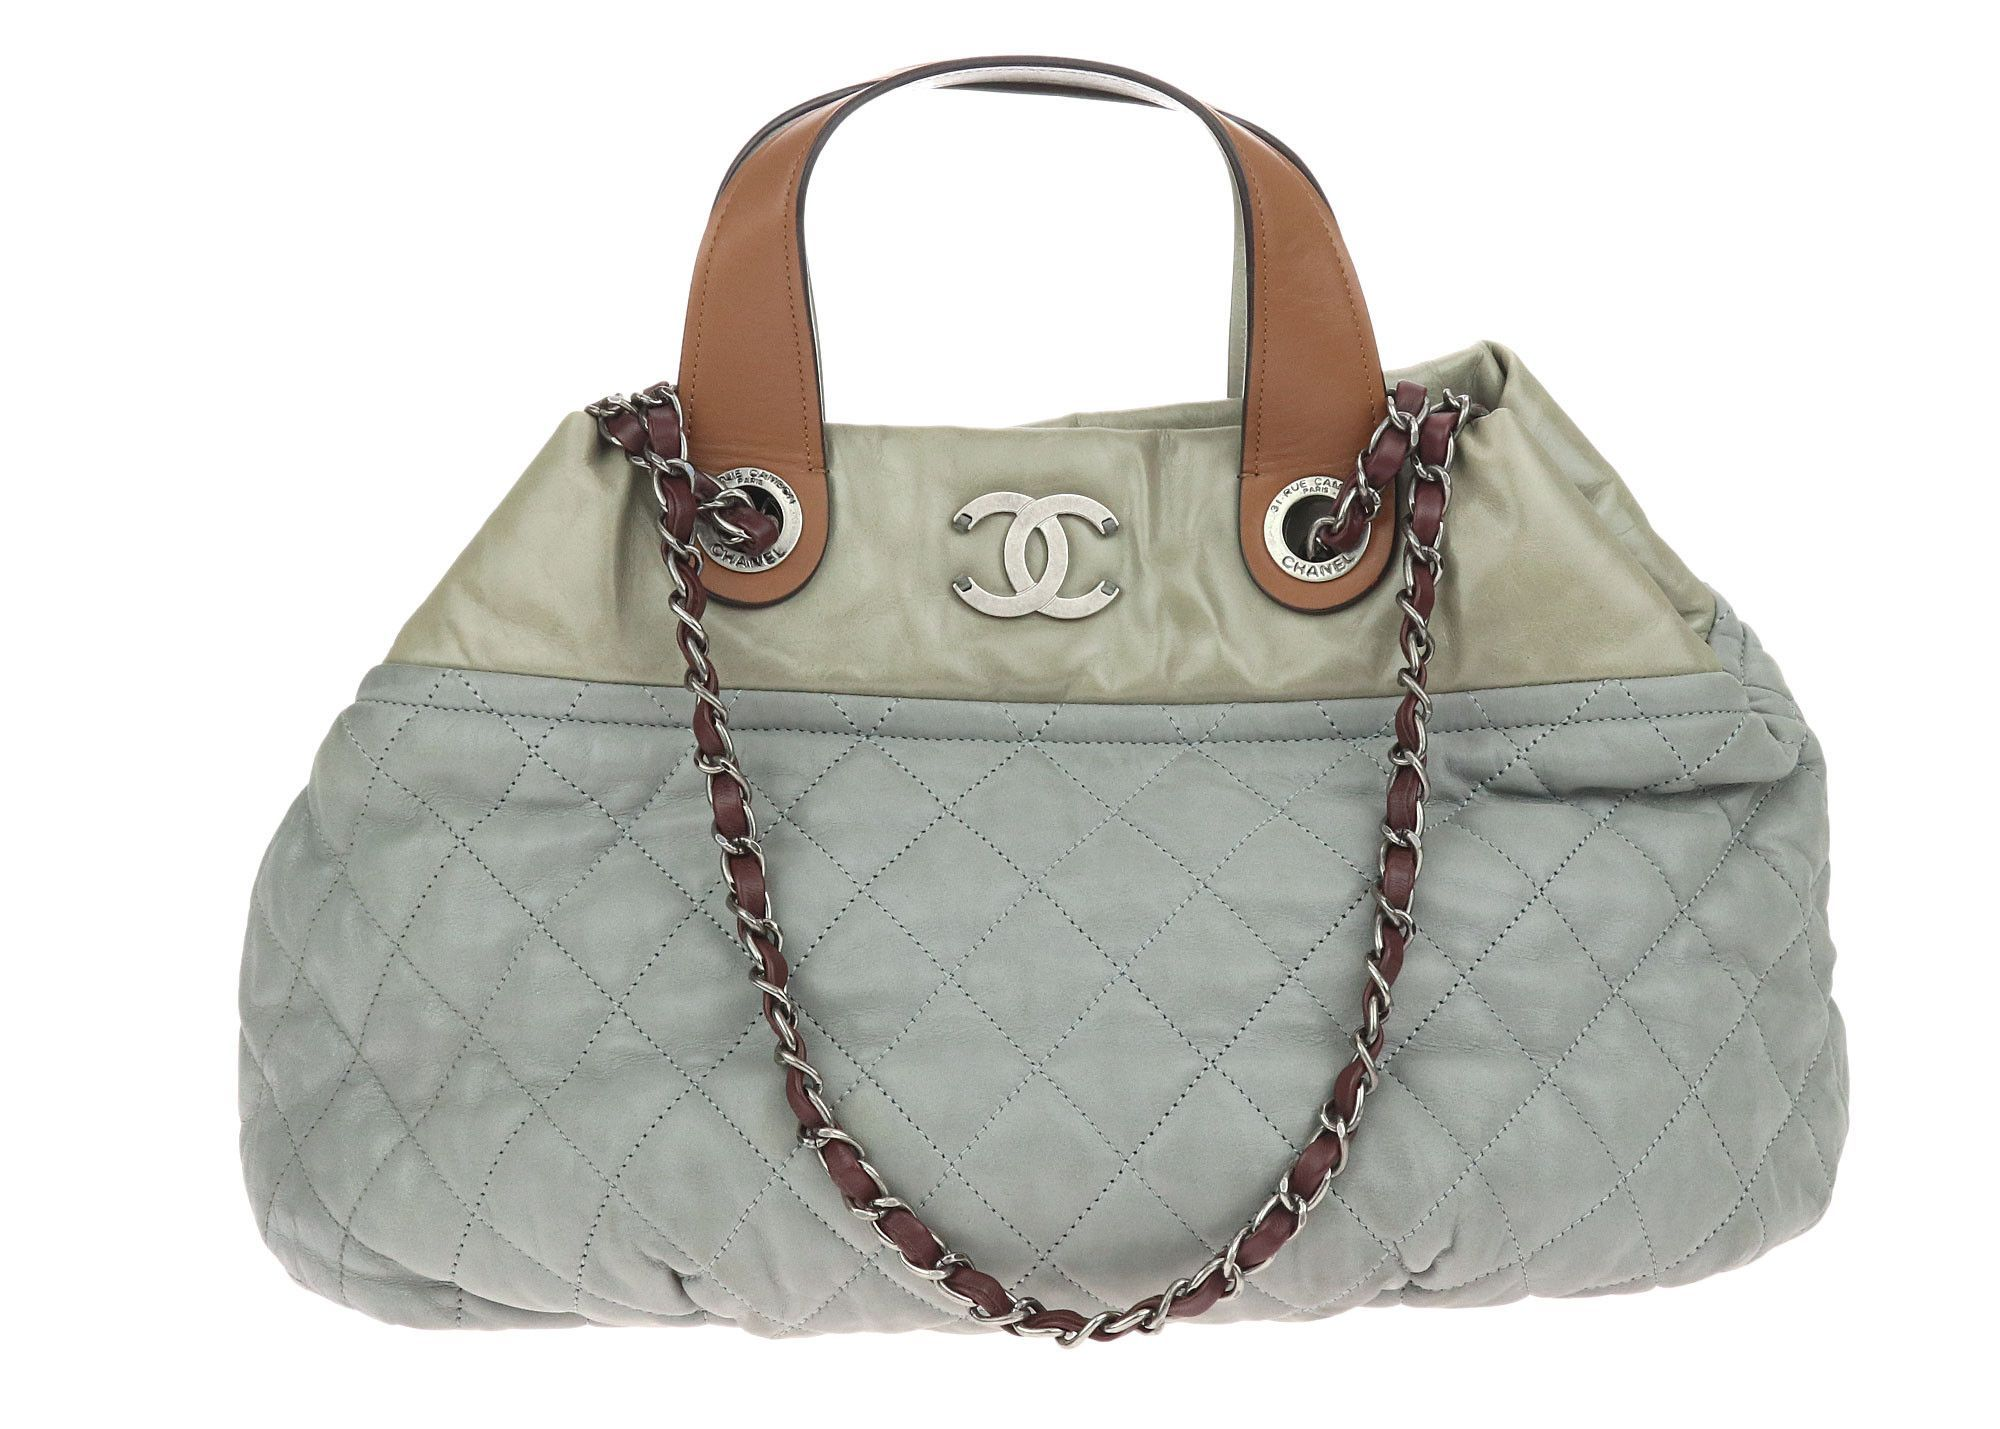 52b7113b0751 Chanel Grey Quilted Iridescent Small In-The-Mix Tote Bag | Products ...